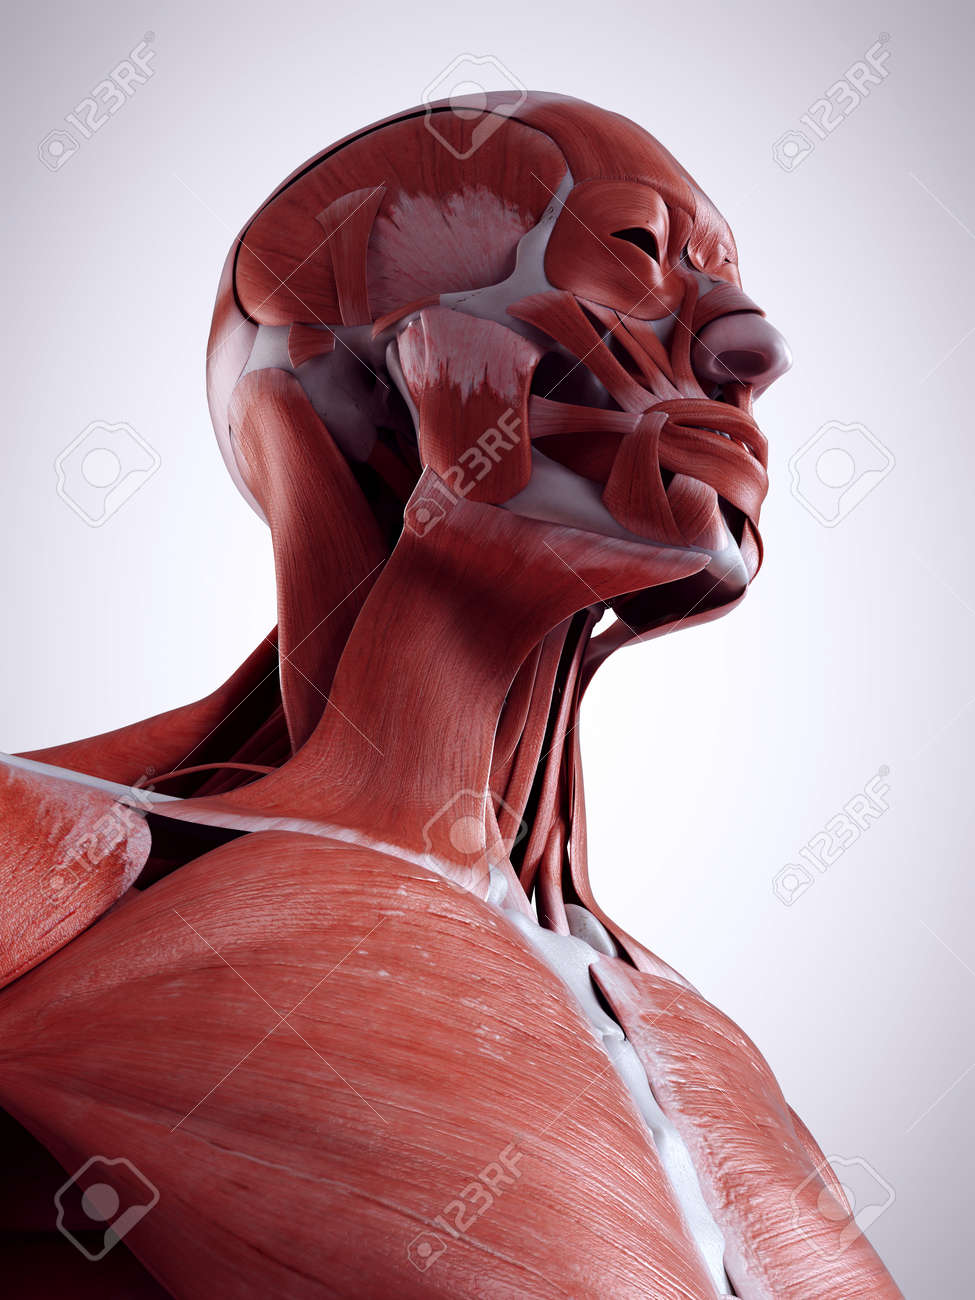 3d Rendered Medically Accurate Illustration Of The Neck Muscles